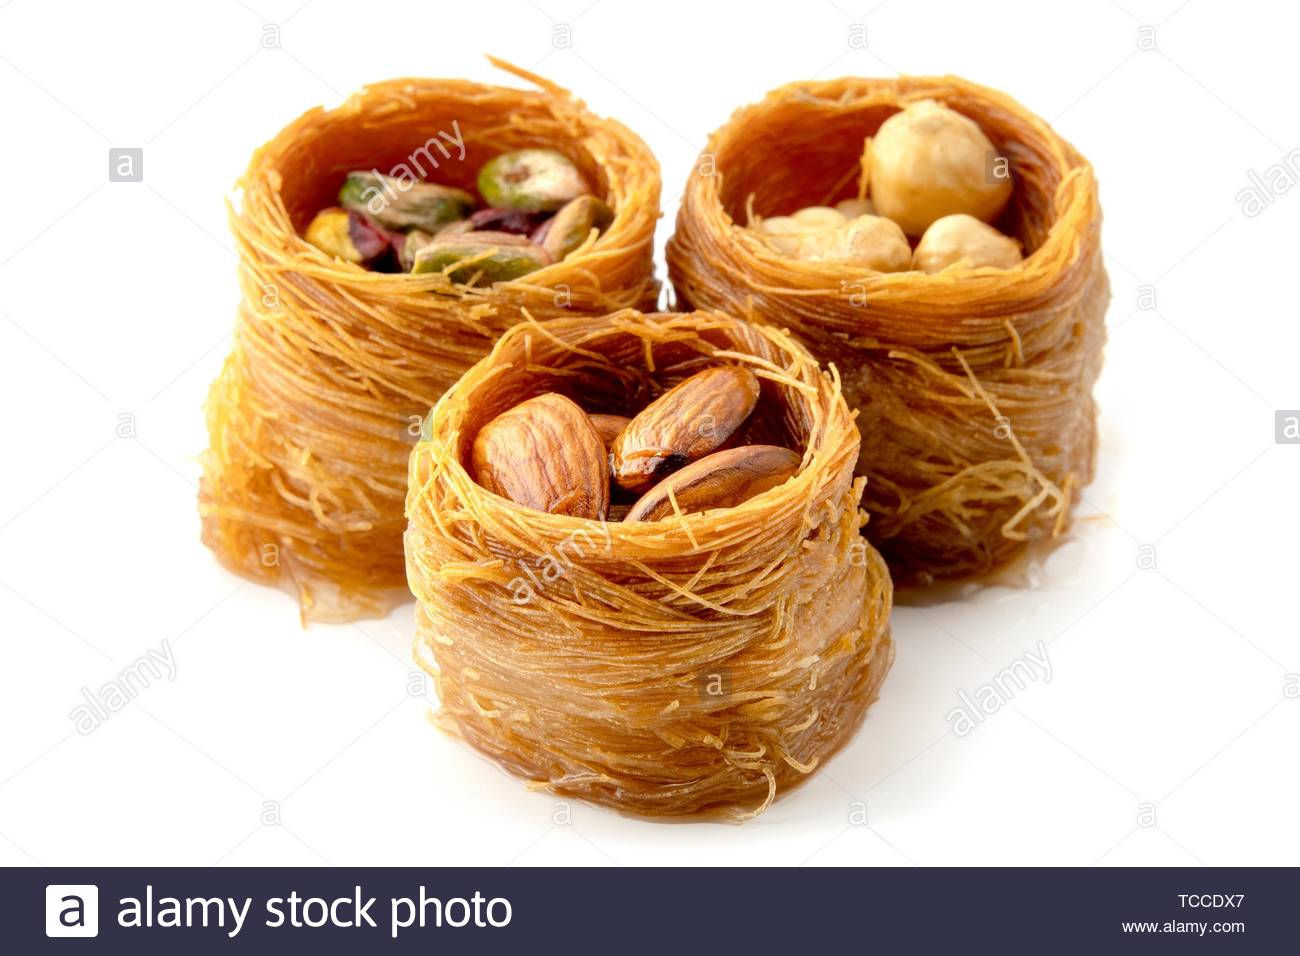 Mixed Bird nest baklava with almonds, nuts and pistachios on a white background. - Stock Image